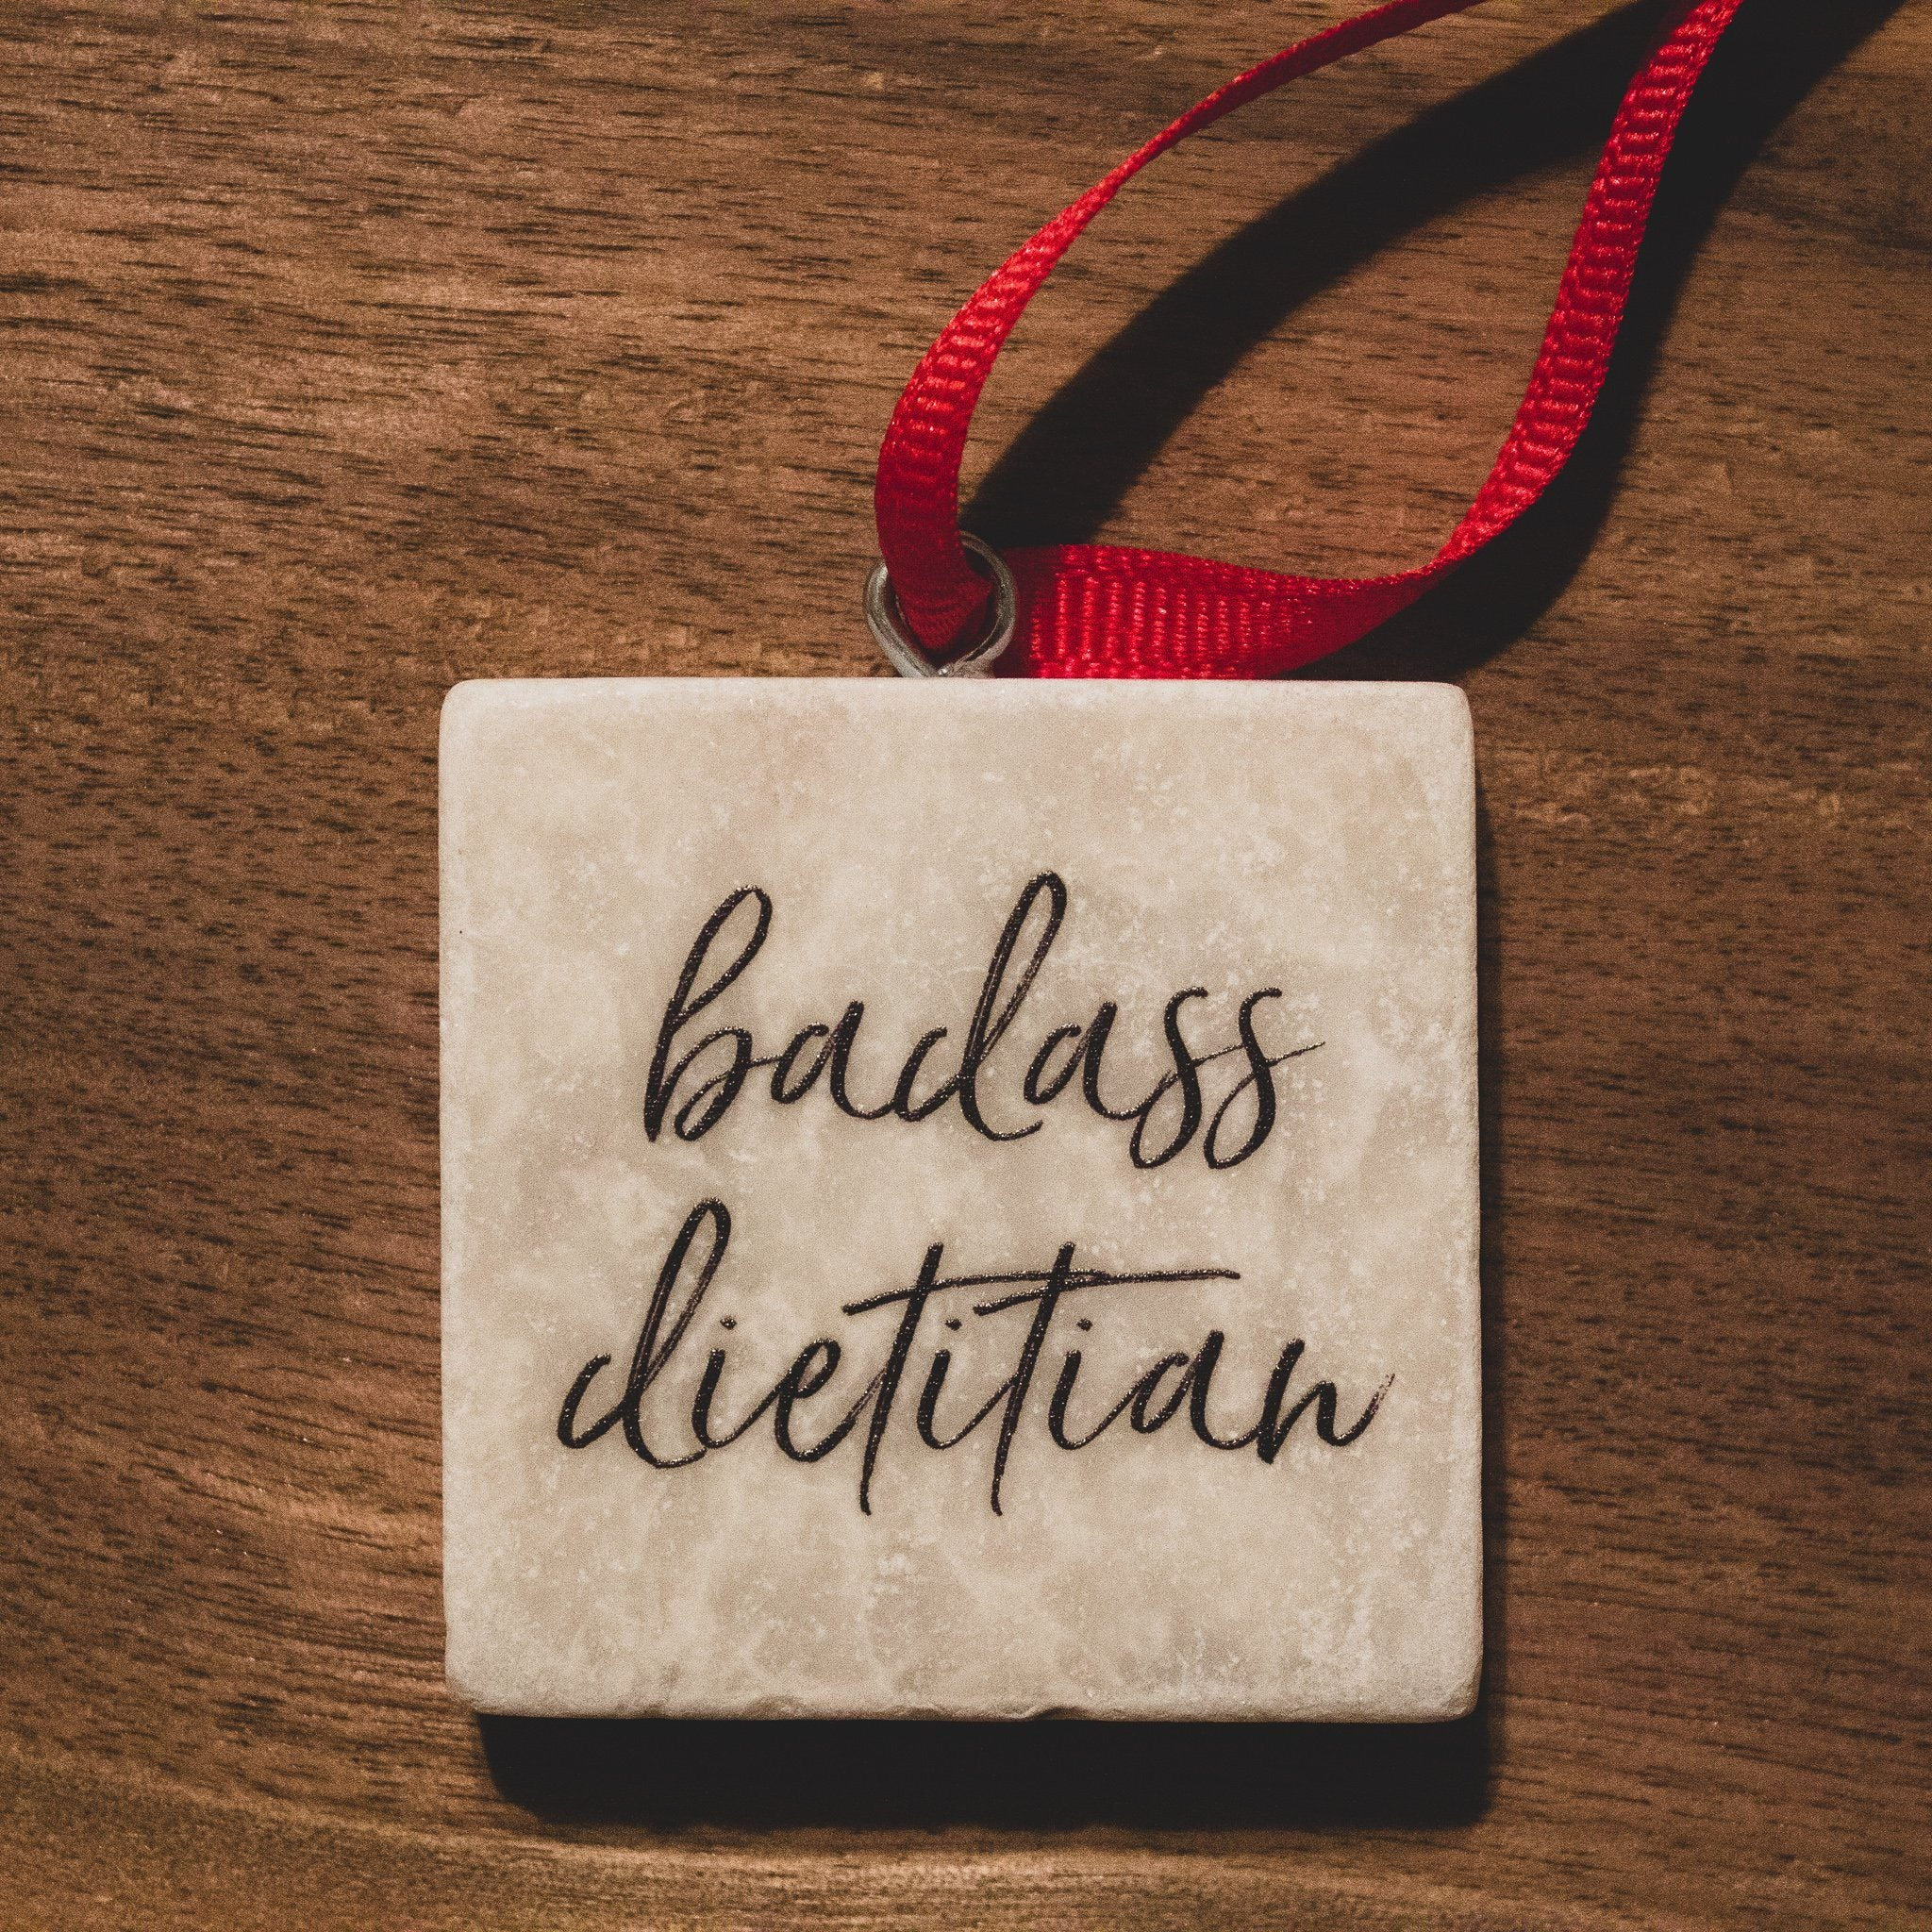 Badass Dietitian Ornament | Dietitian Gift